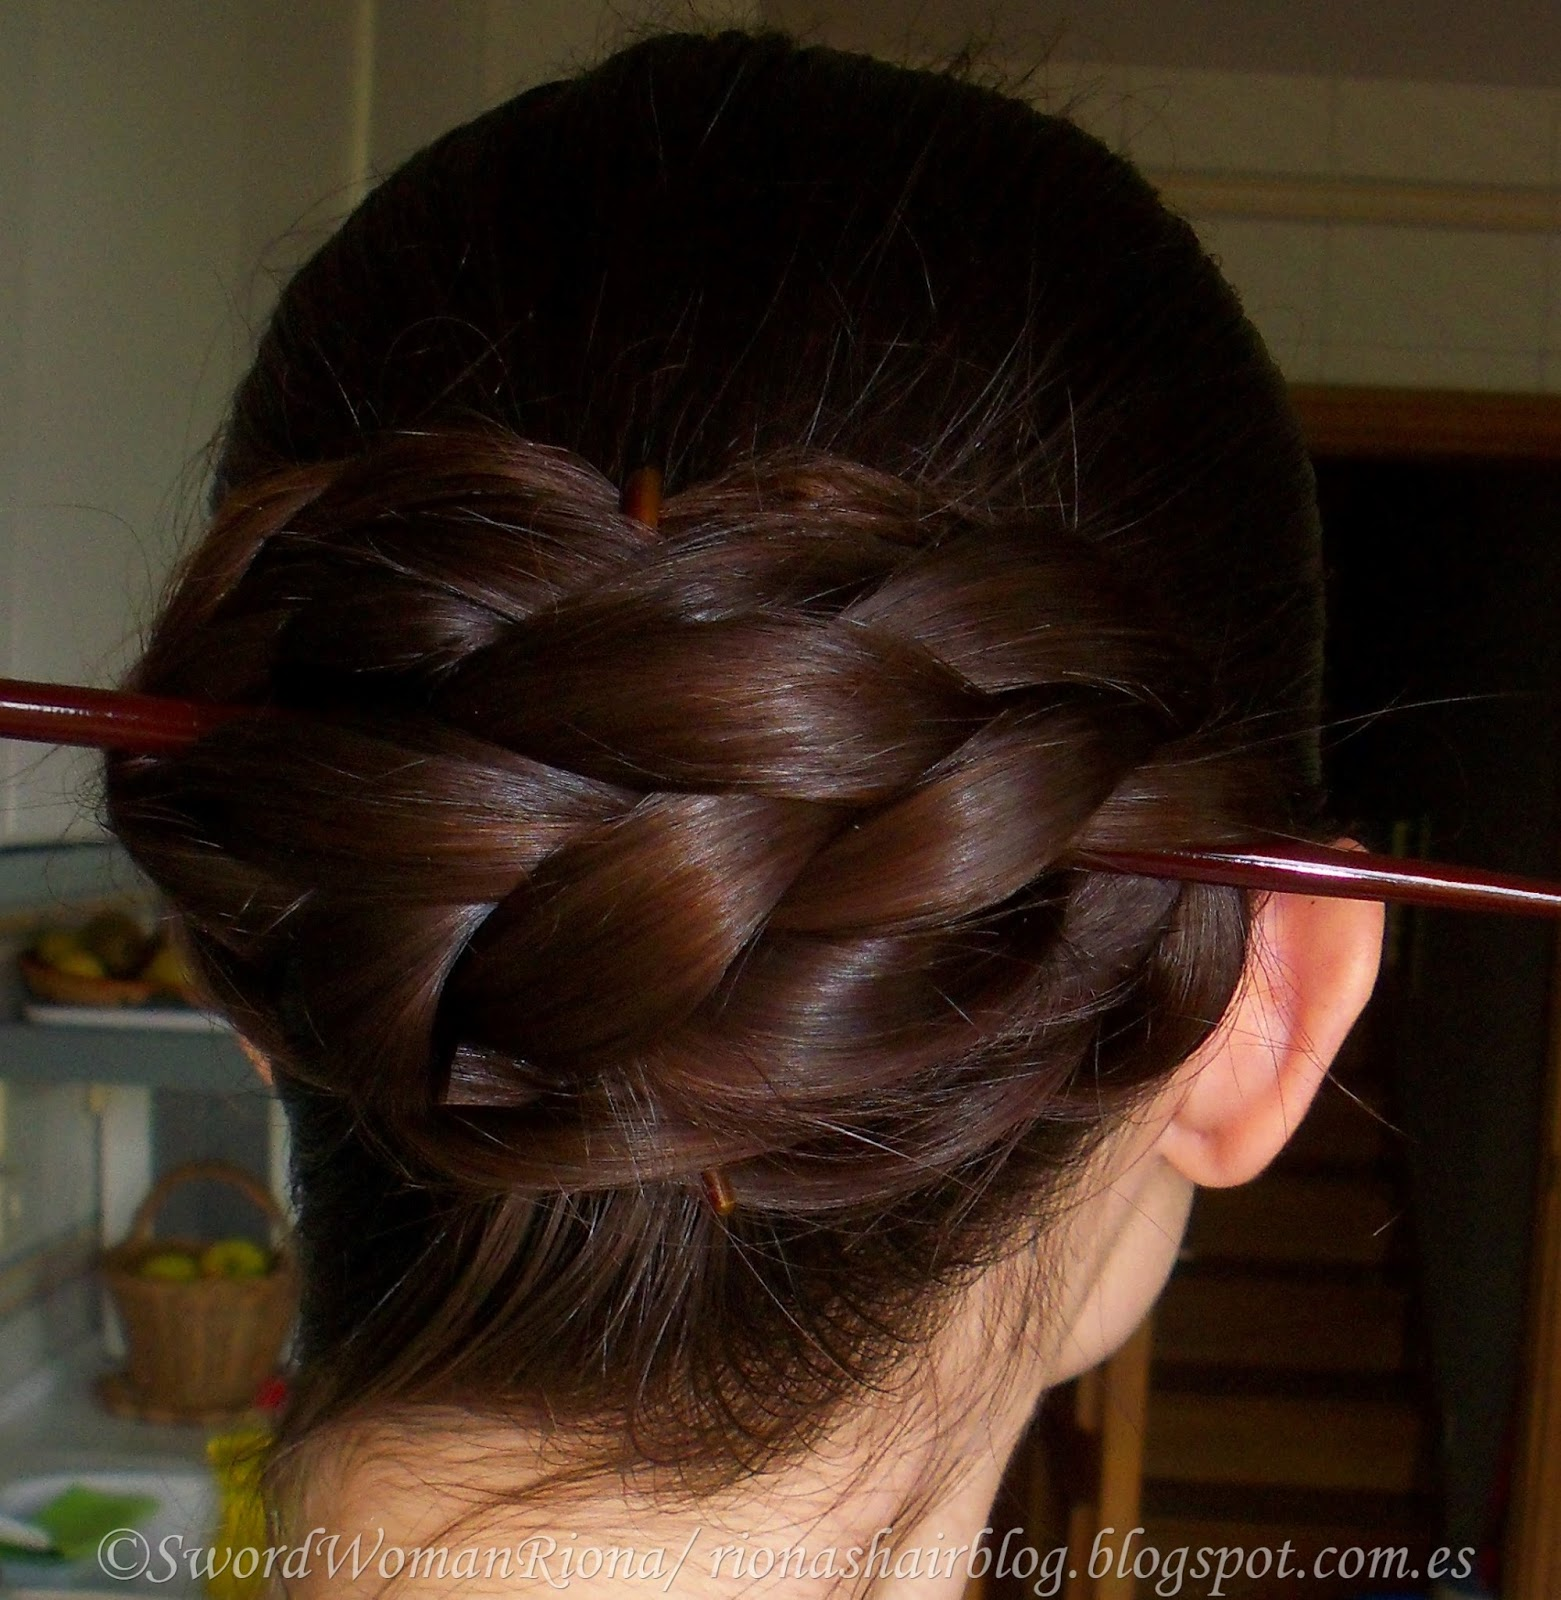 A Sword Woman S Natural Hair Blog One Coil Chinese Braided